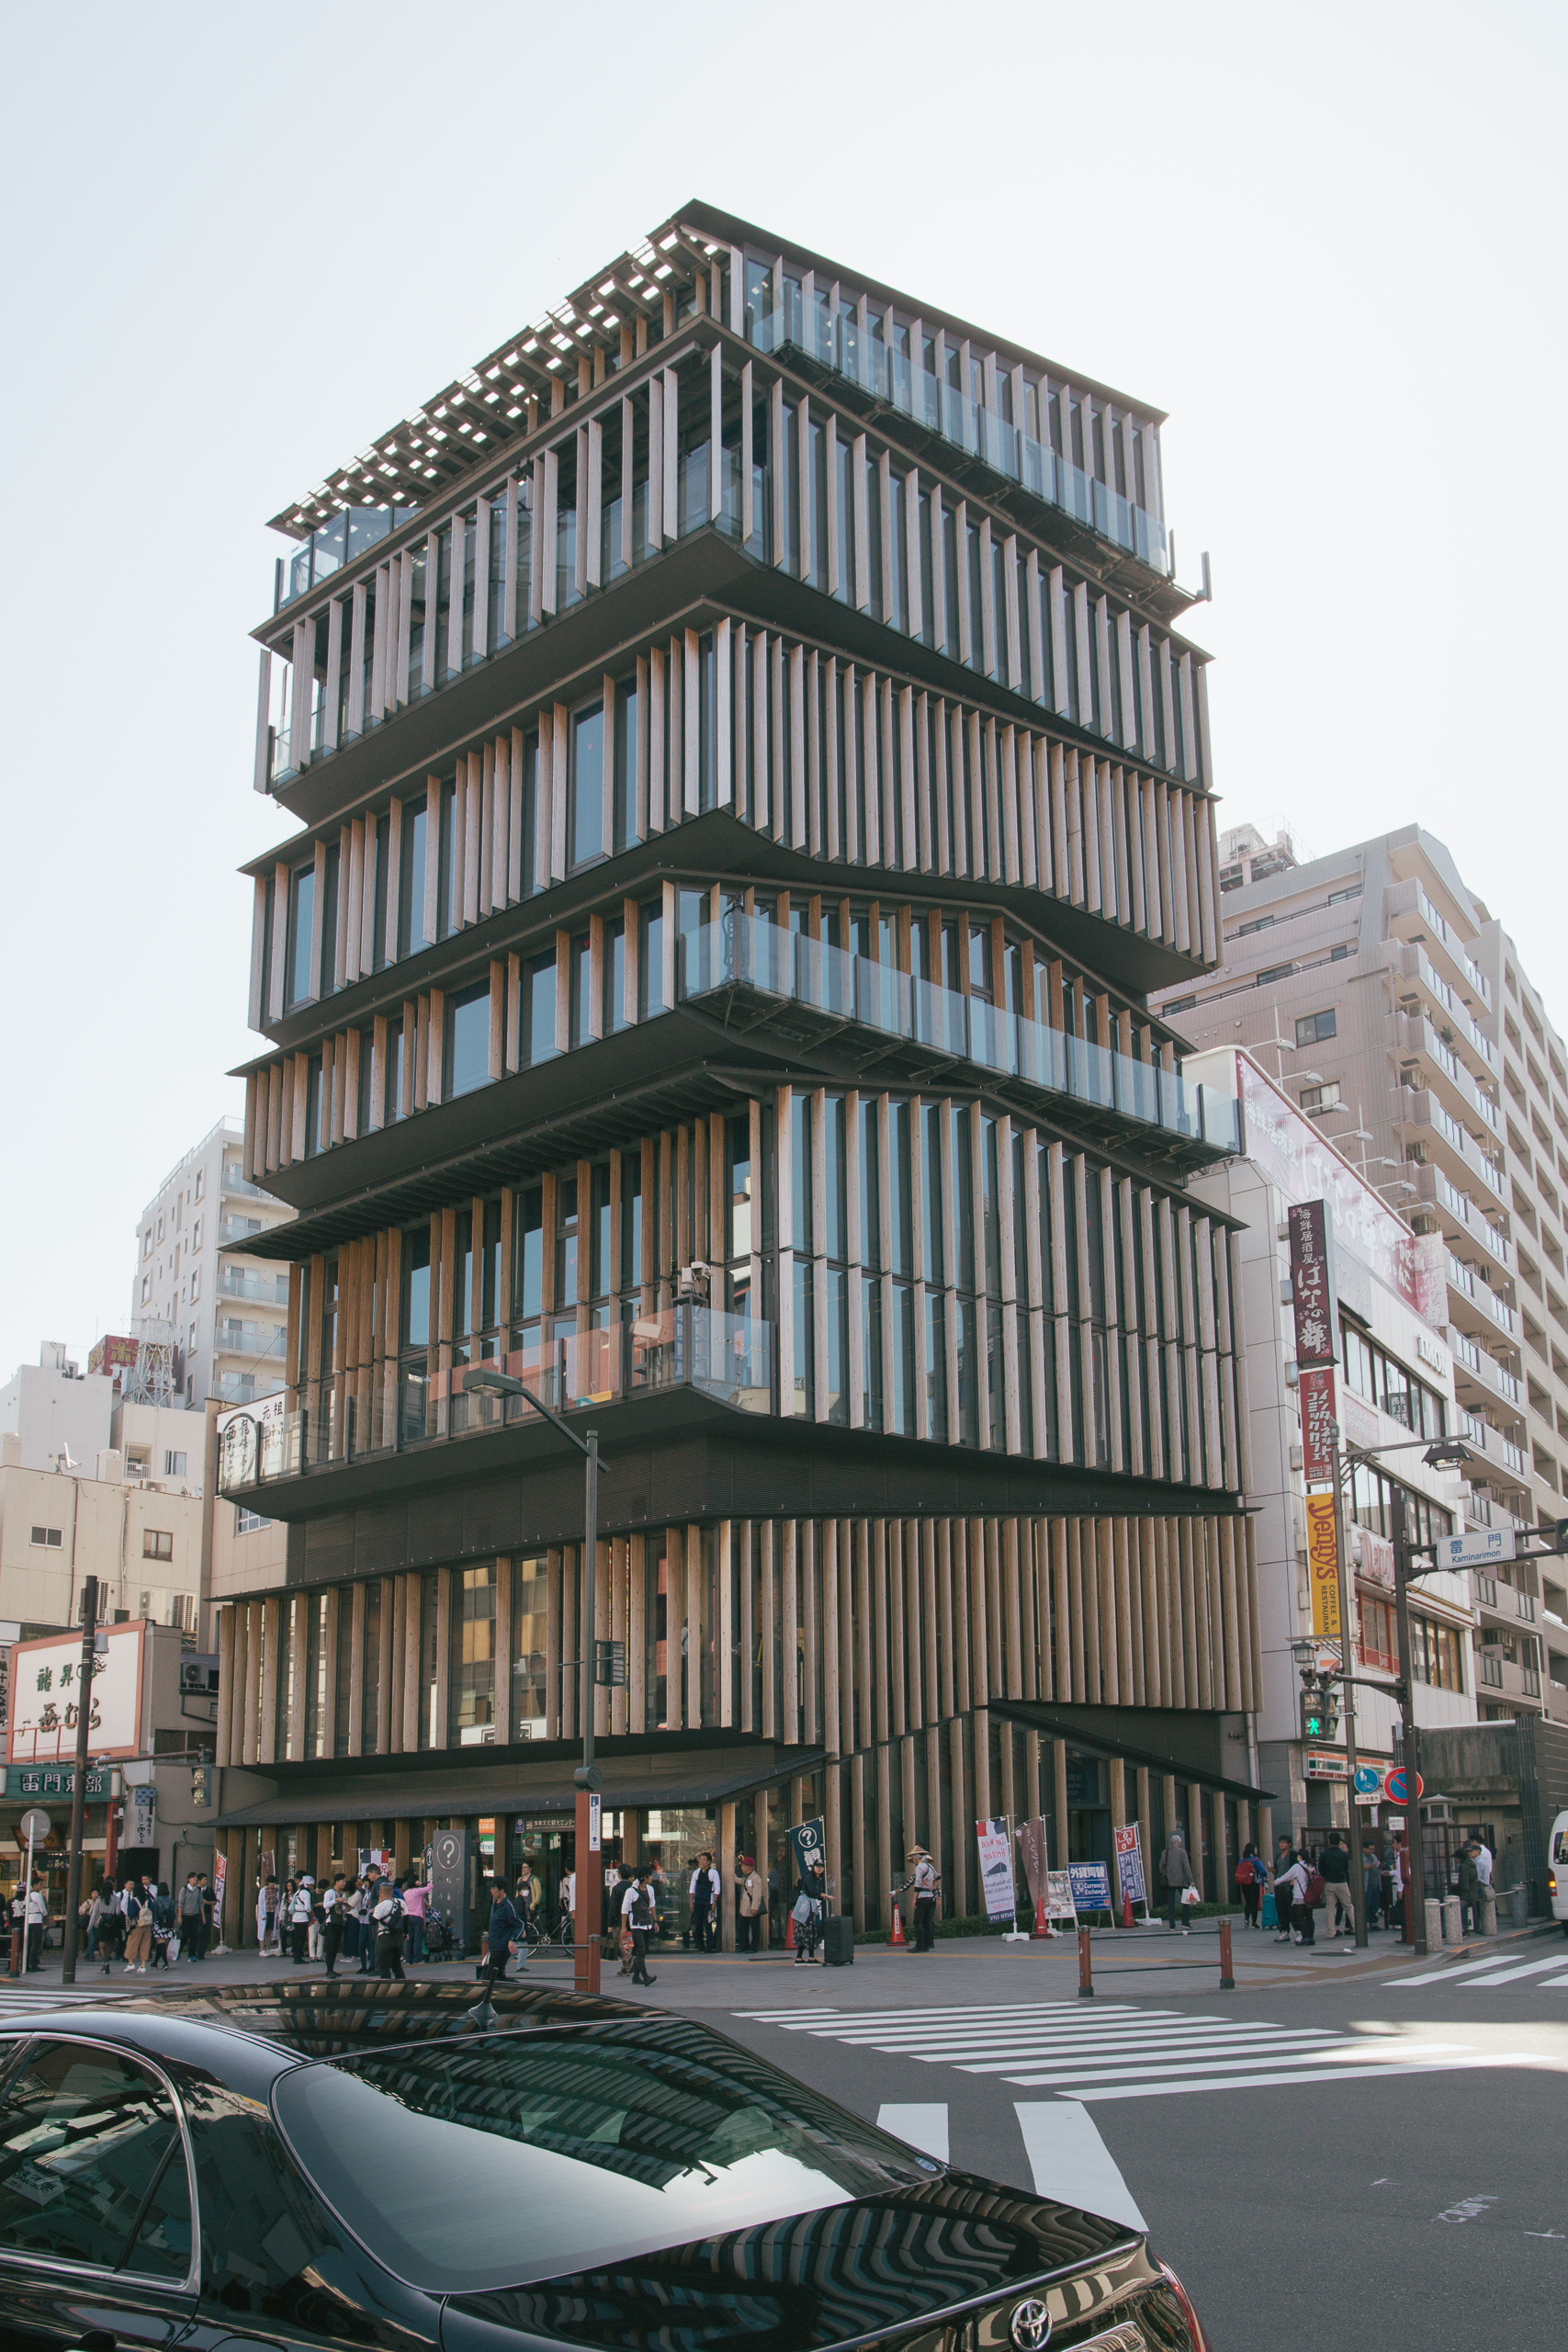 The Asakusa Culture & Tourism Center by Kengo Kuma and Associates. Signature wood-cladding for a building that seems to resemble houses stacked atop one another. The details on the inside of the building were quite interesting as well.